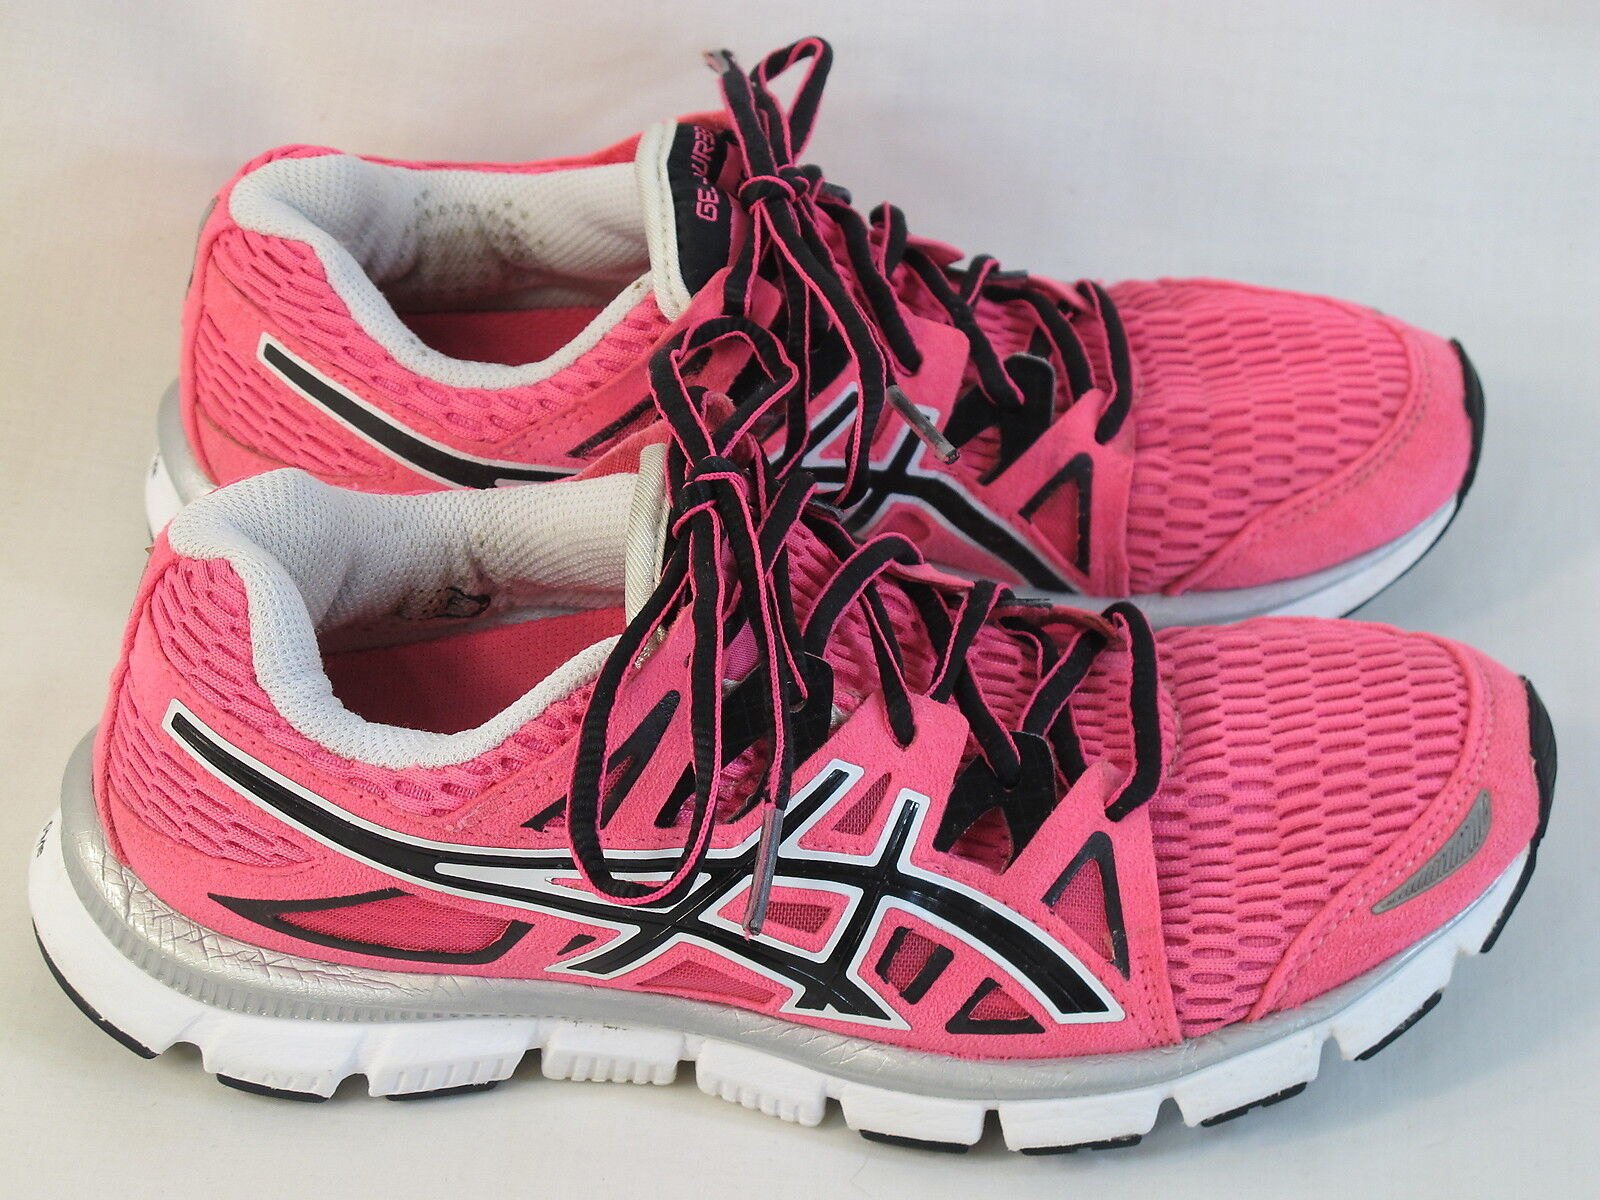 ASICS Gel Blur 33 2.0 Running Shoes Women's Comfortable Seasonal clearance sale